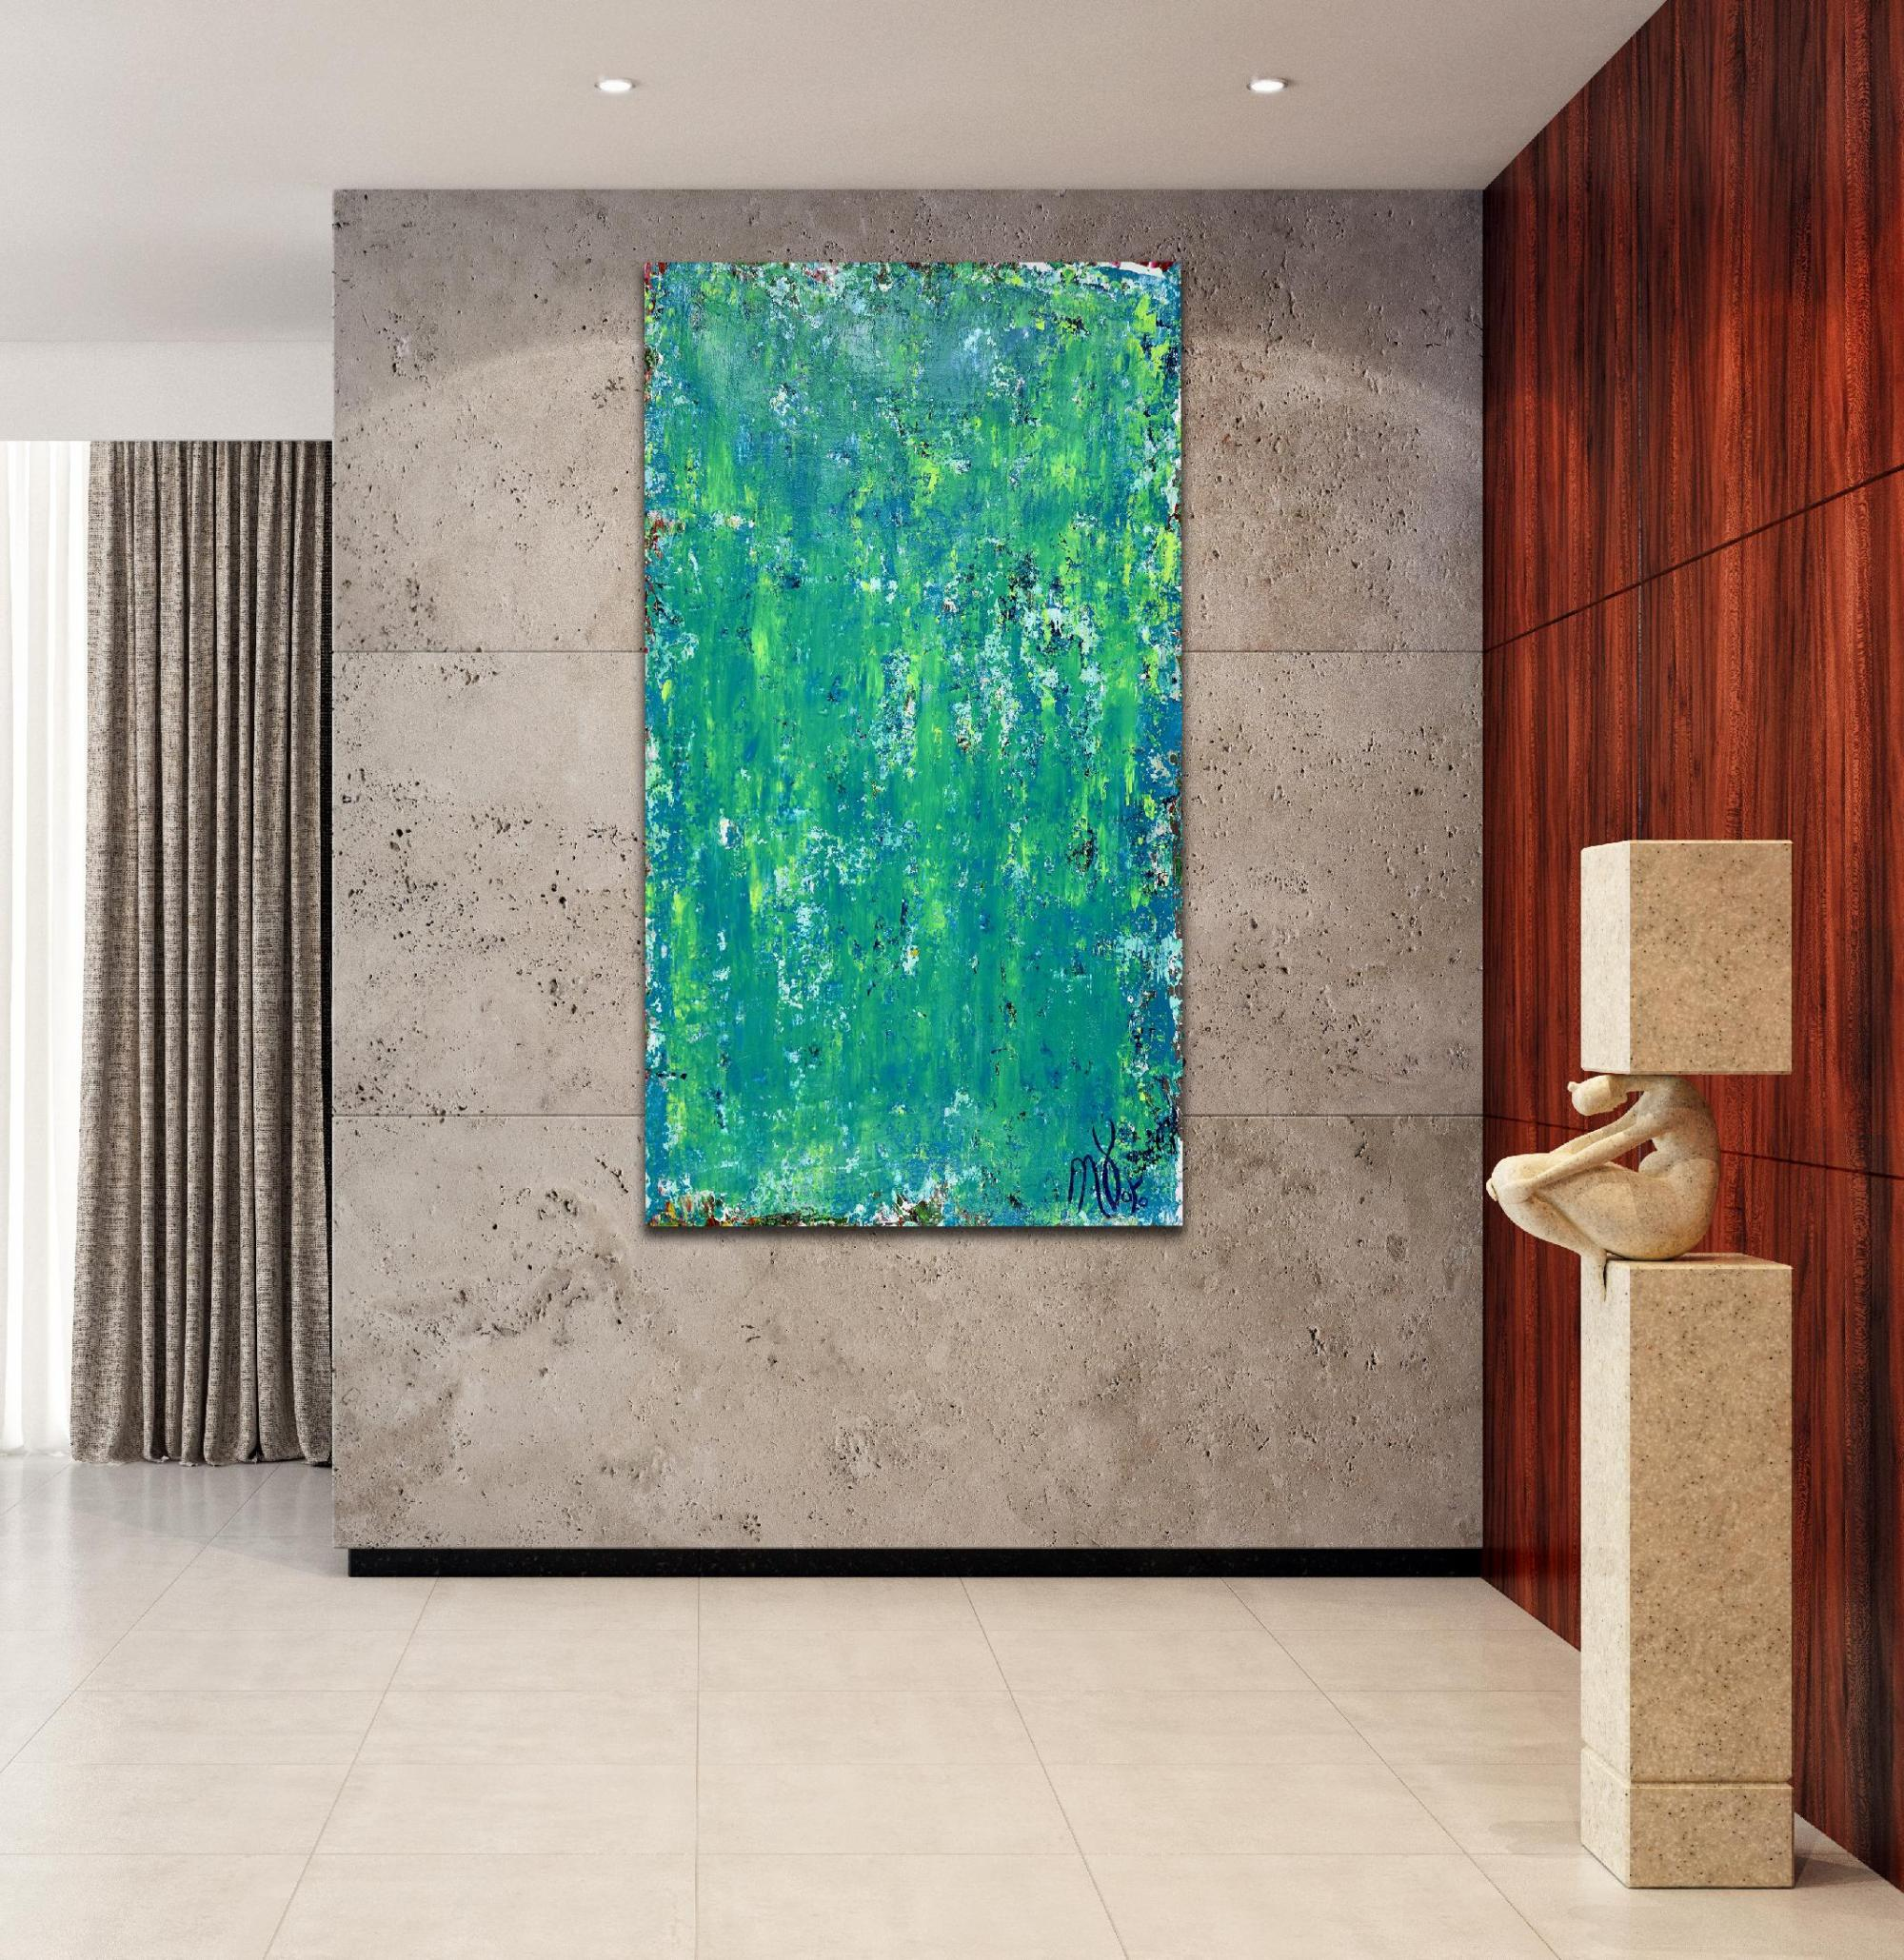 Room View - Verdor (A Romance With Green) 2 (2020) by Nestor Toro in Los Angeles